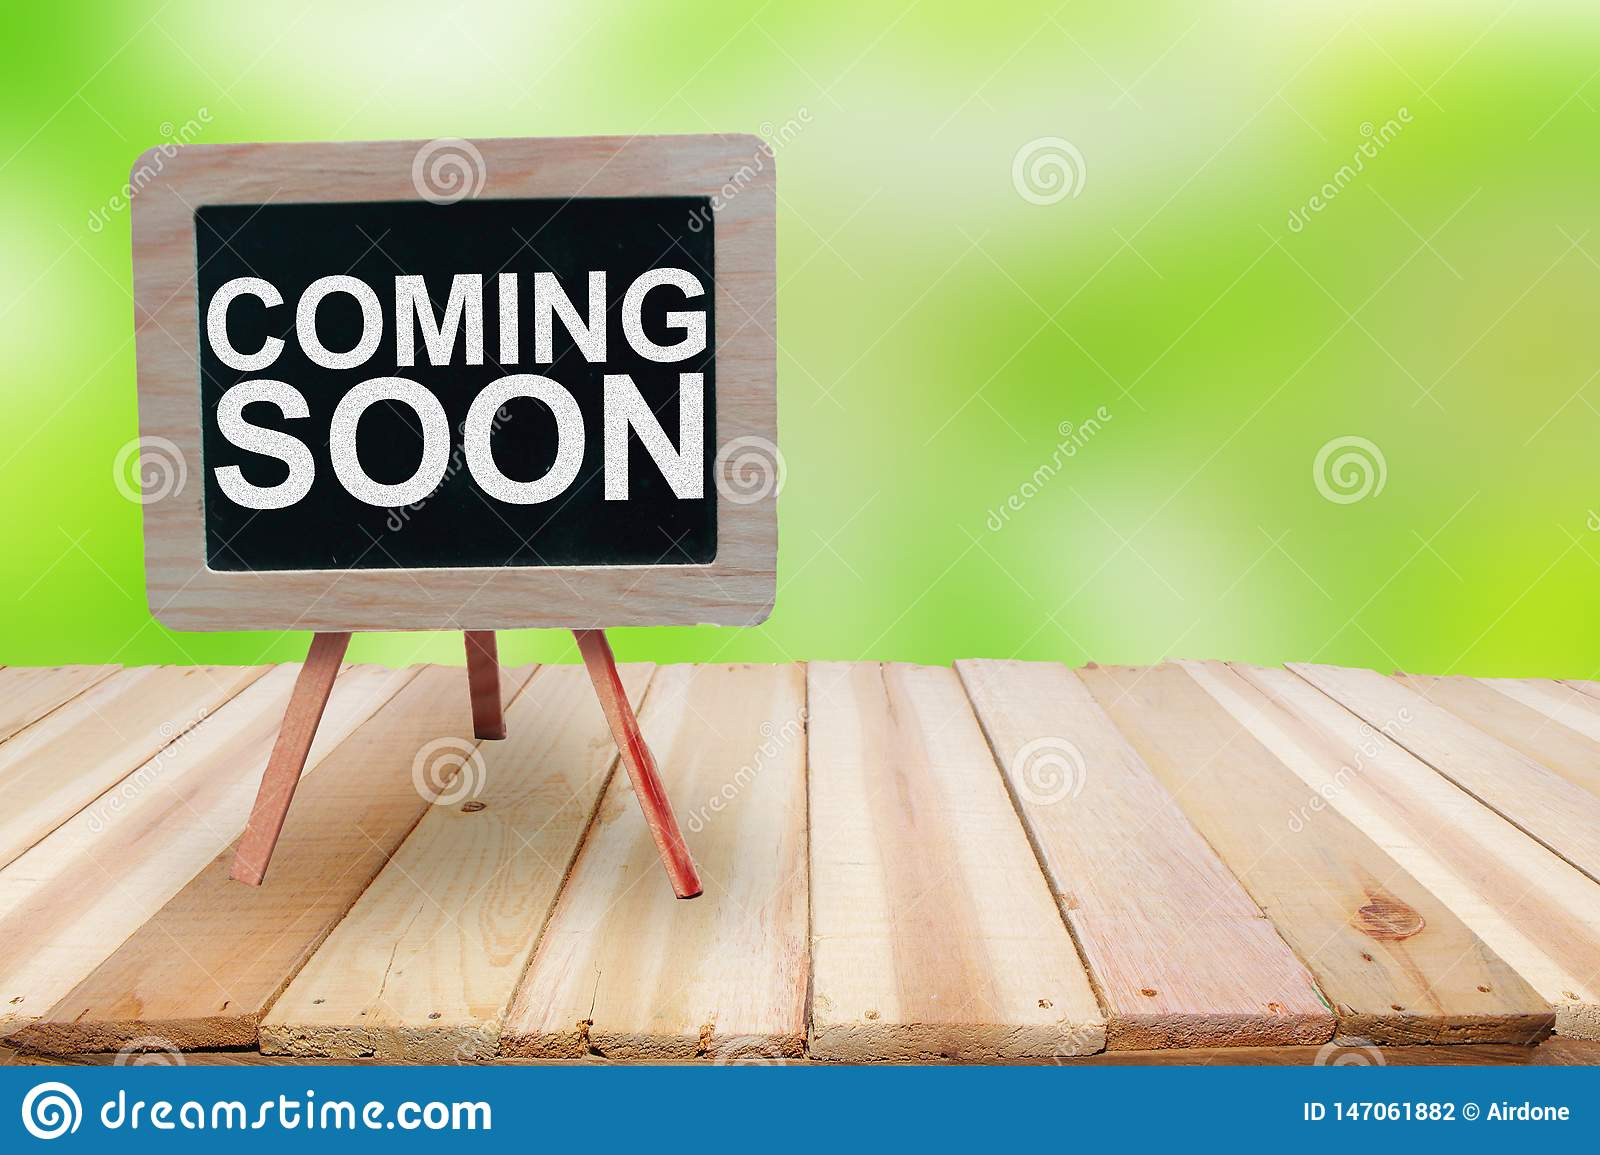 Coming Soon Words Typography Concept Stock Photo Image Of Approaching Marketing 147061882